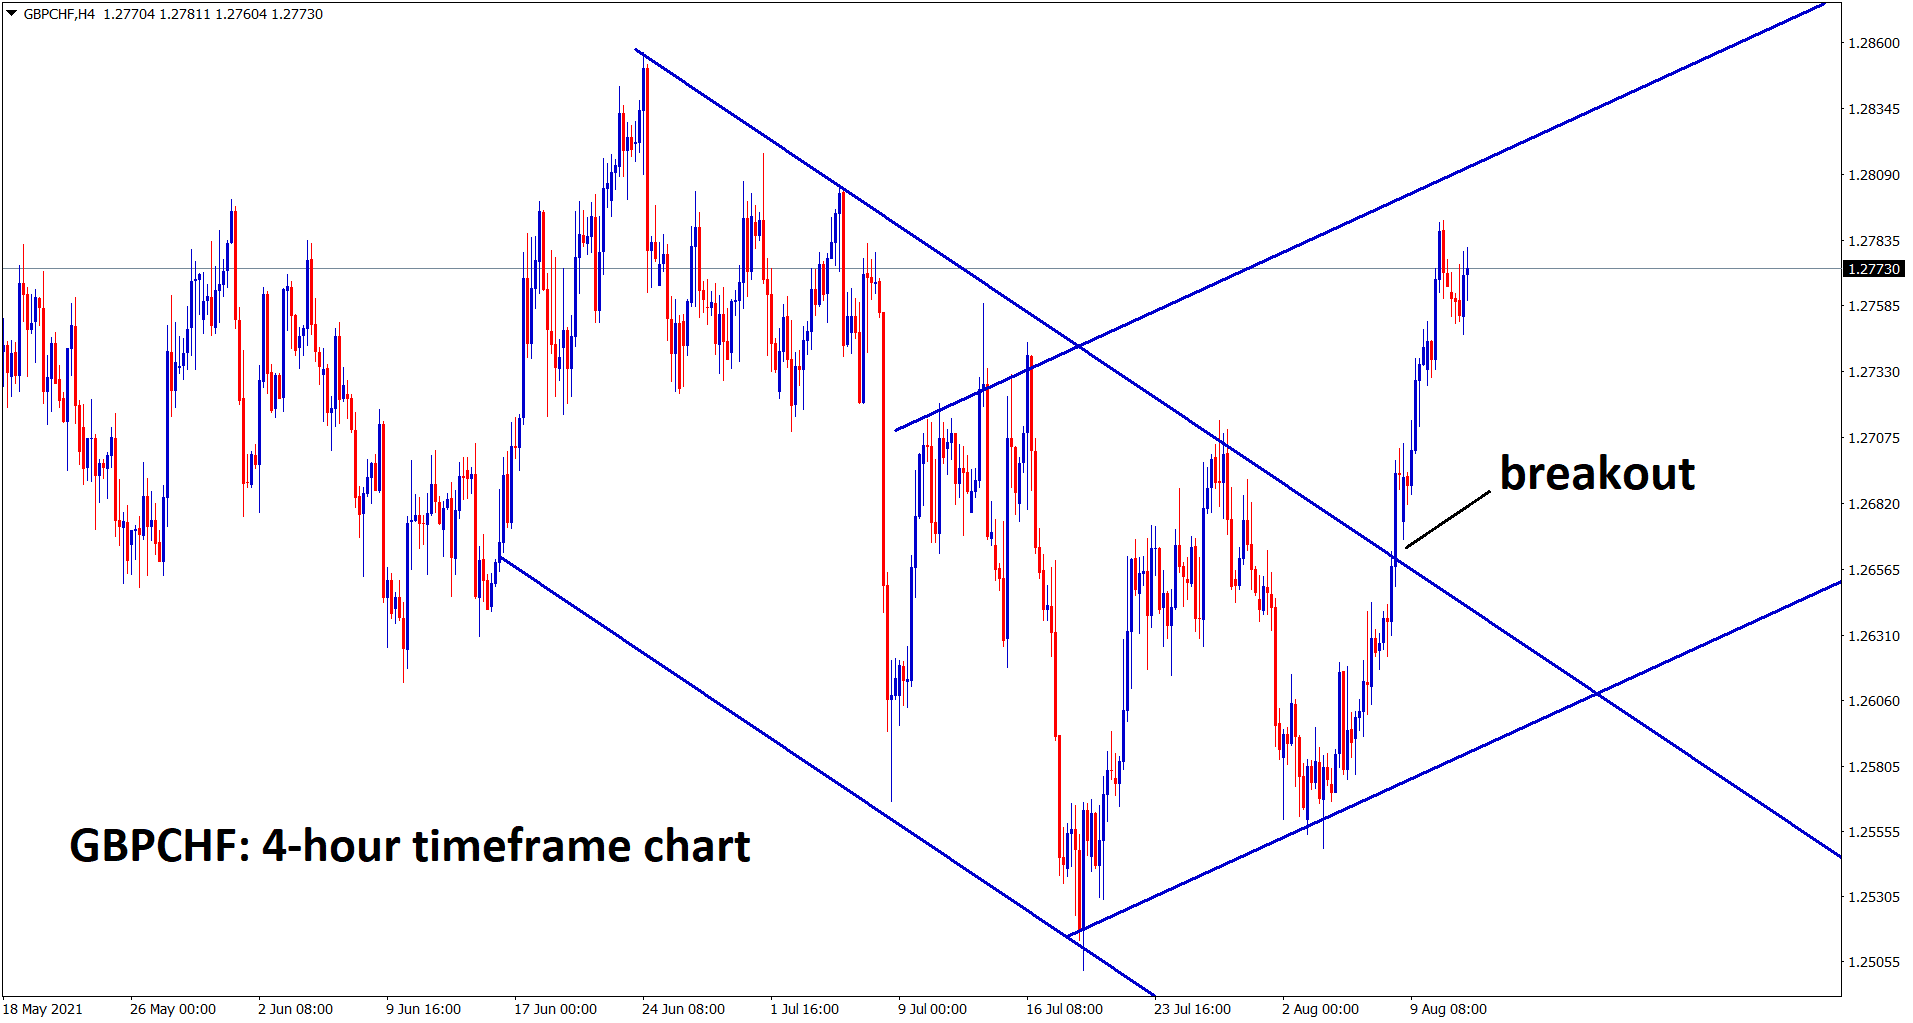 GBPCHF is moving in uptrend after breaking the descending channel